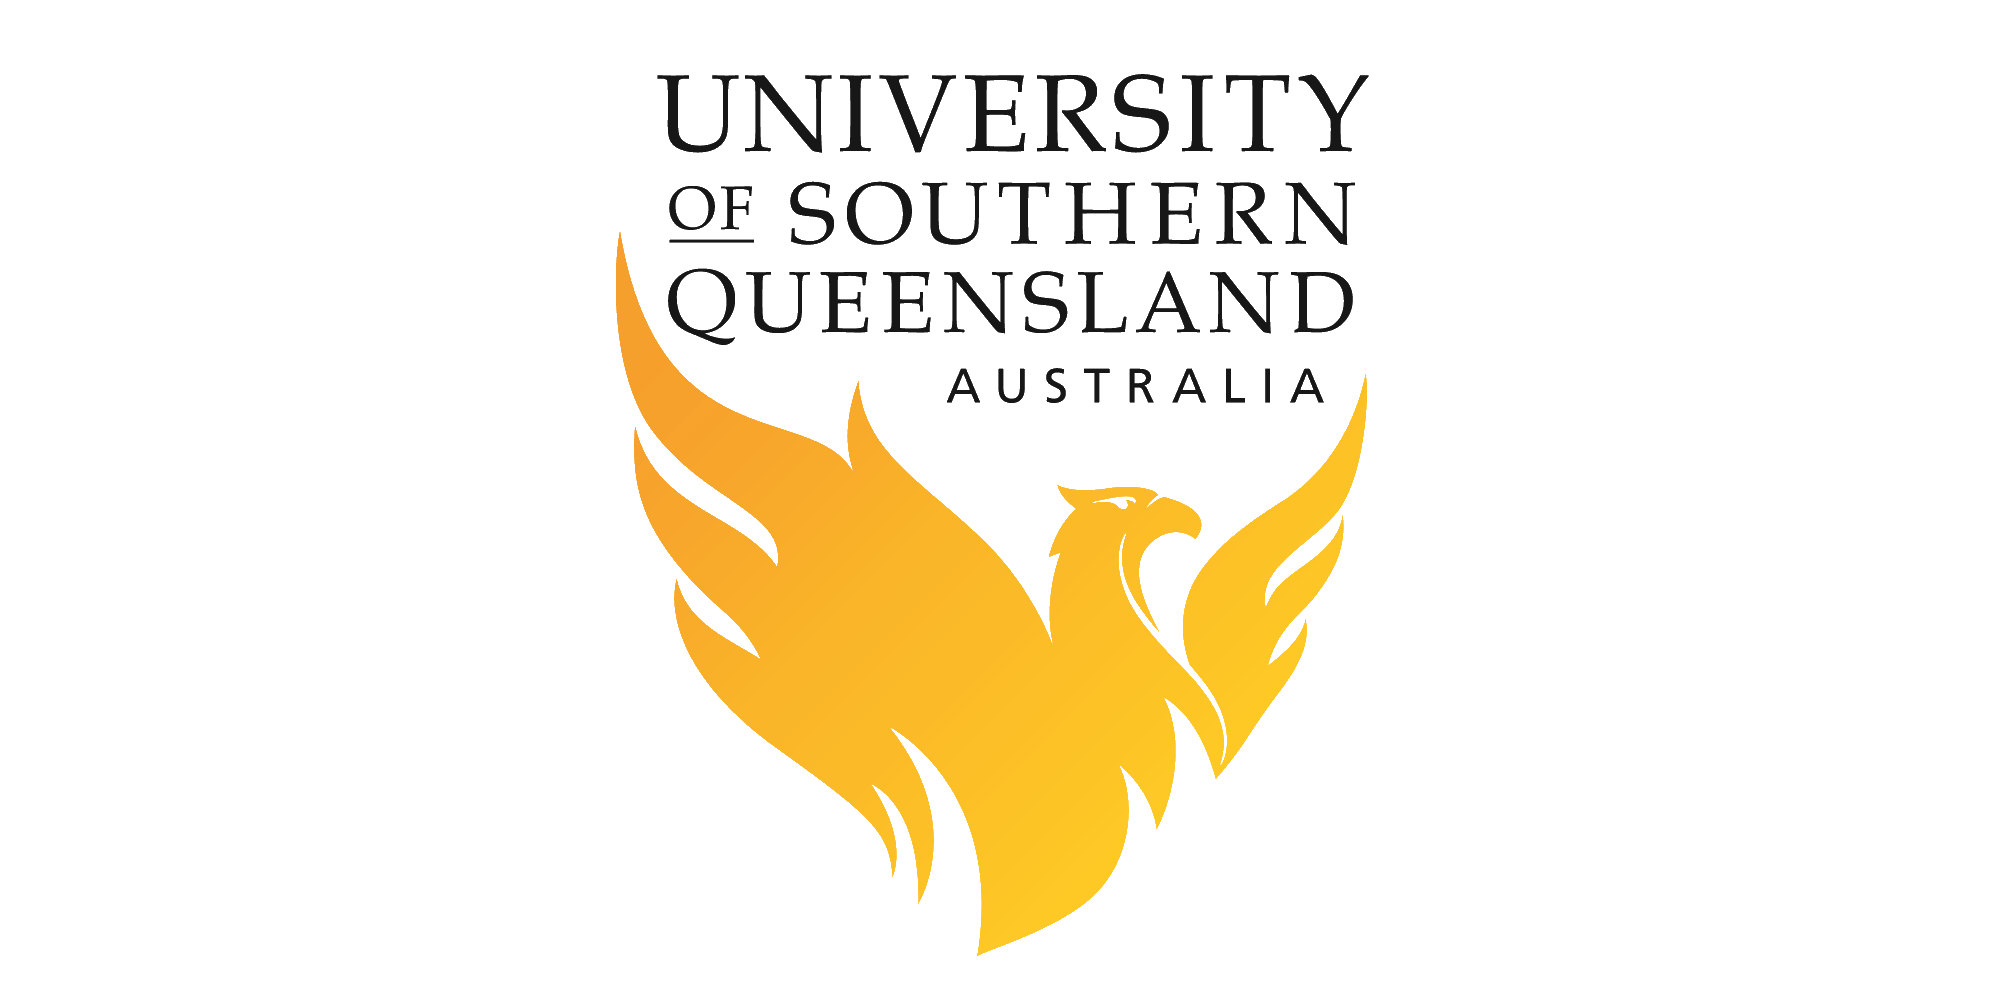 Univeristy of Southern Queensland Australia